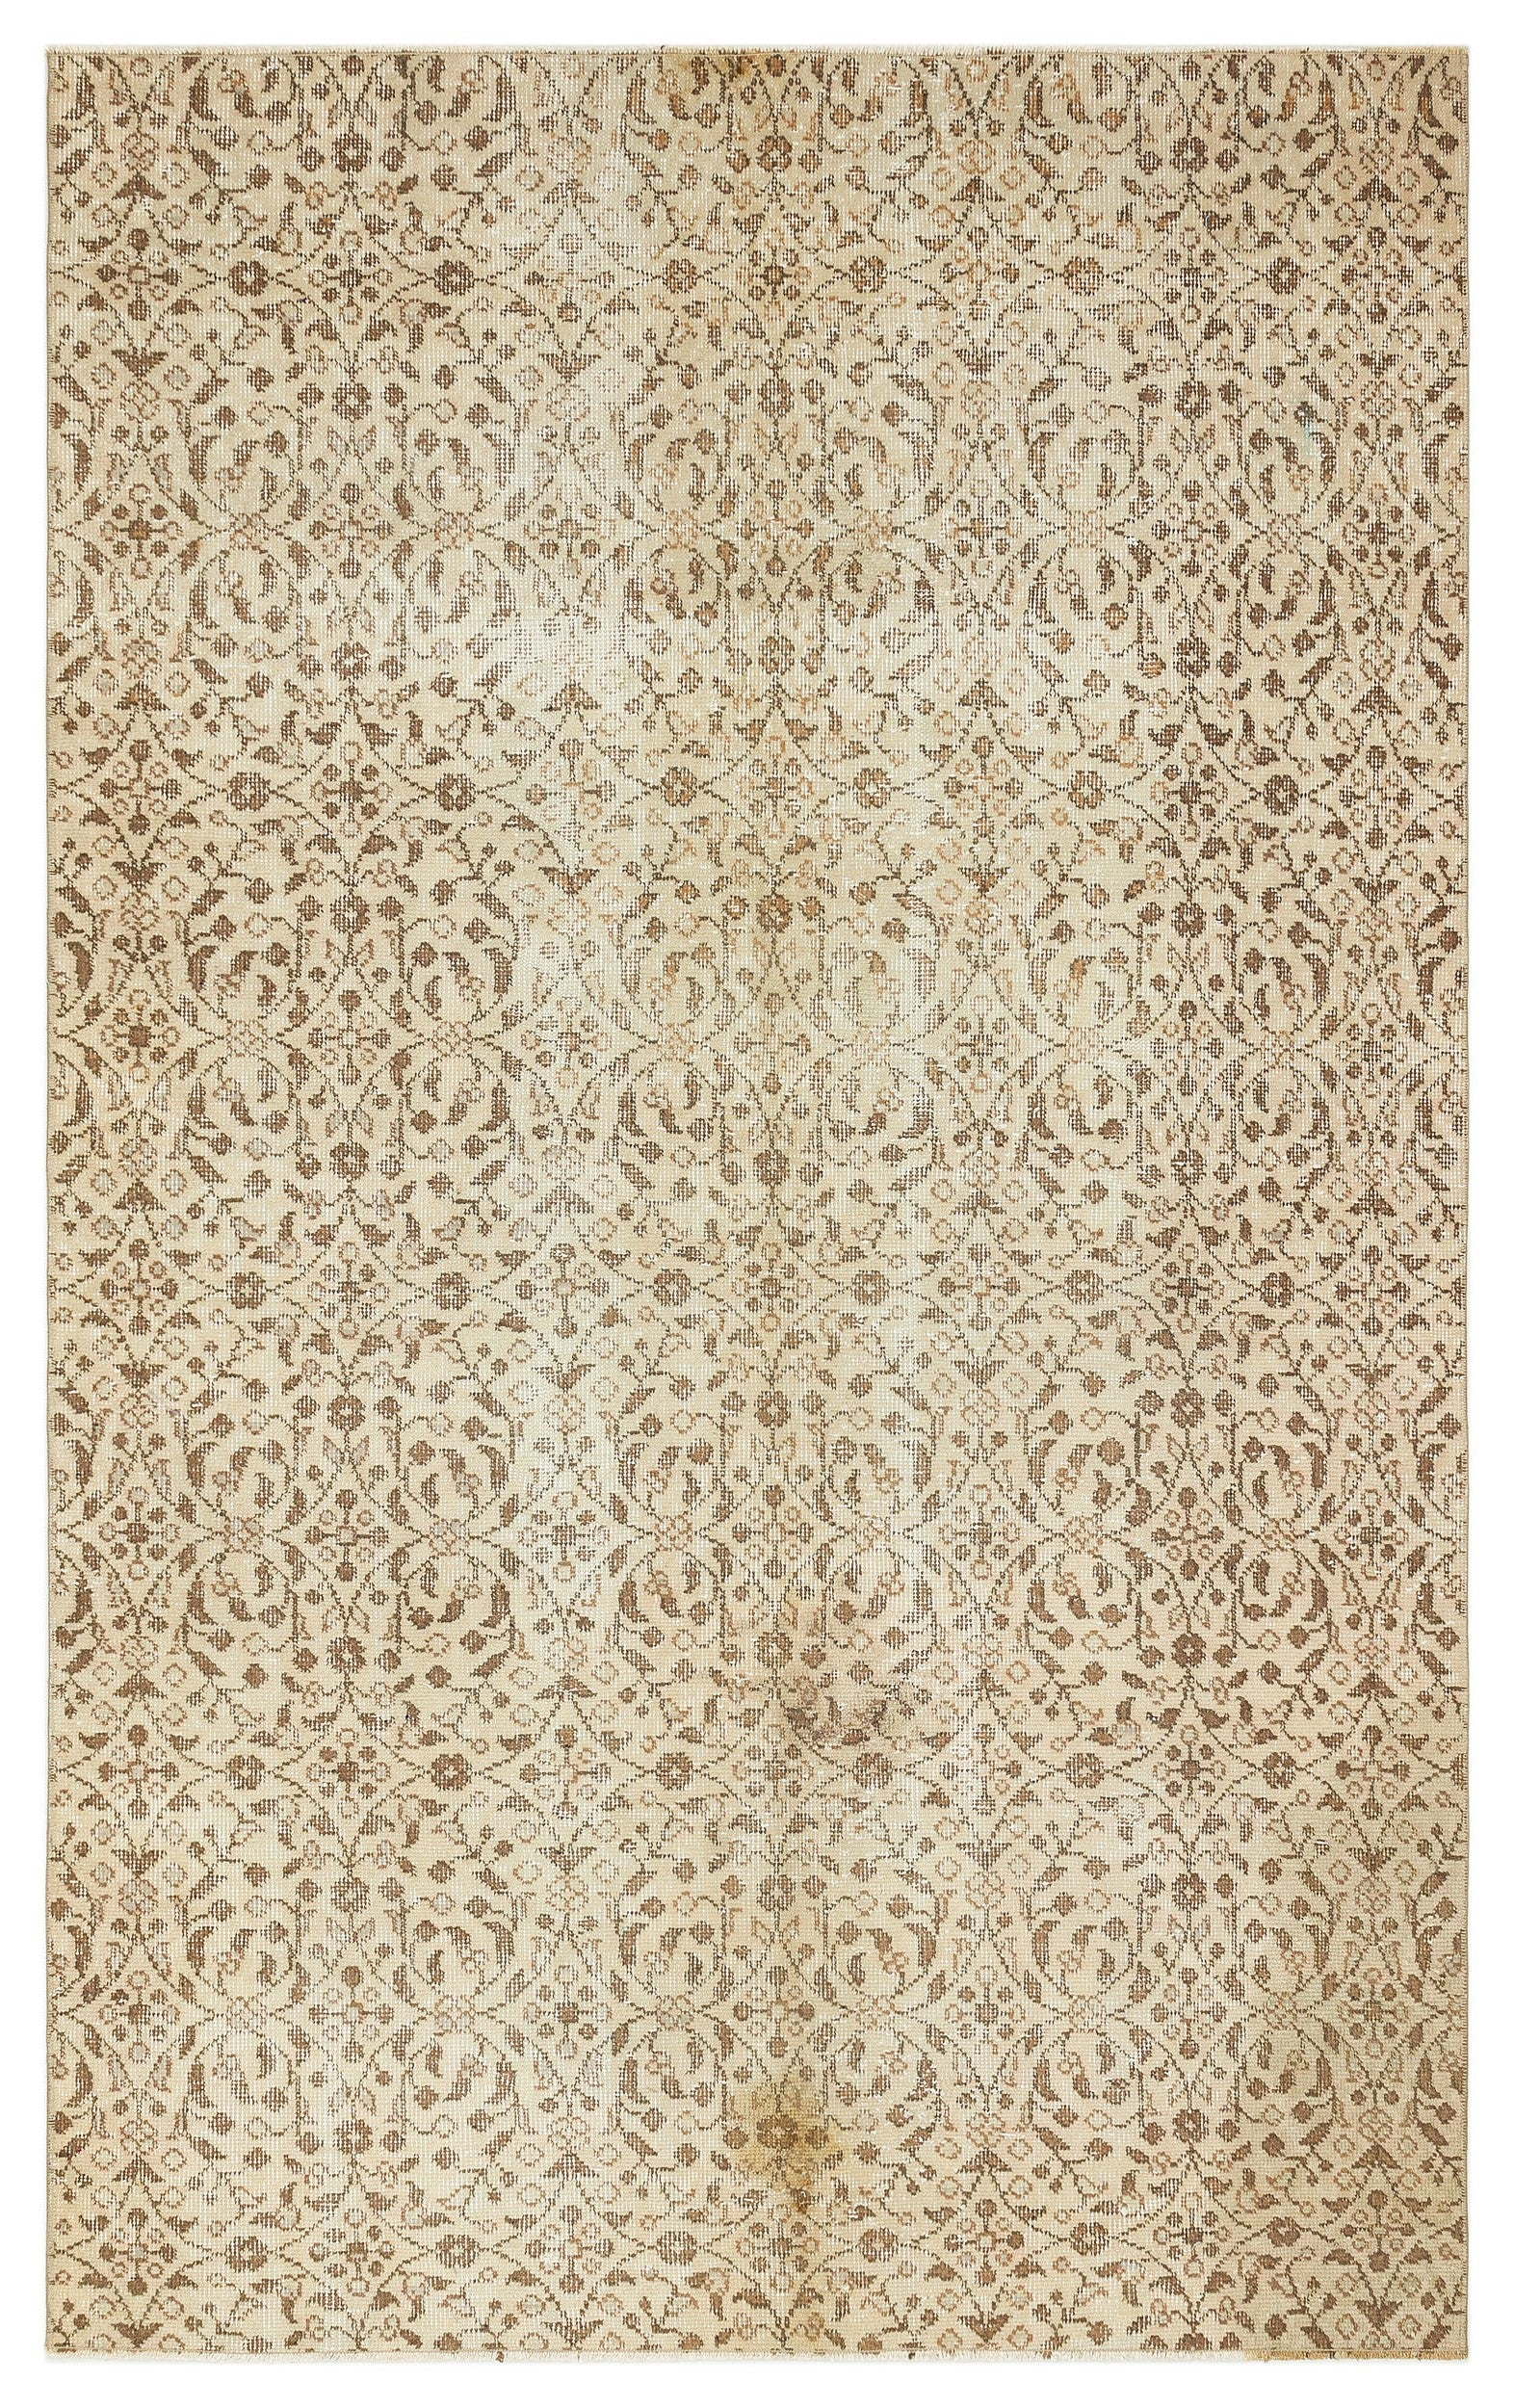 Beige Over Dyed Vintage Rug 4'8'' x 7'9'' ft 143 x 235 cm